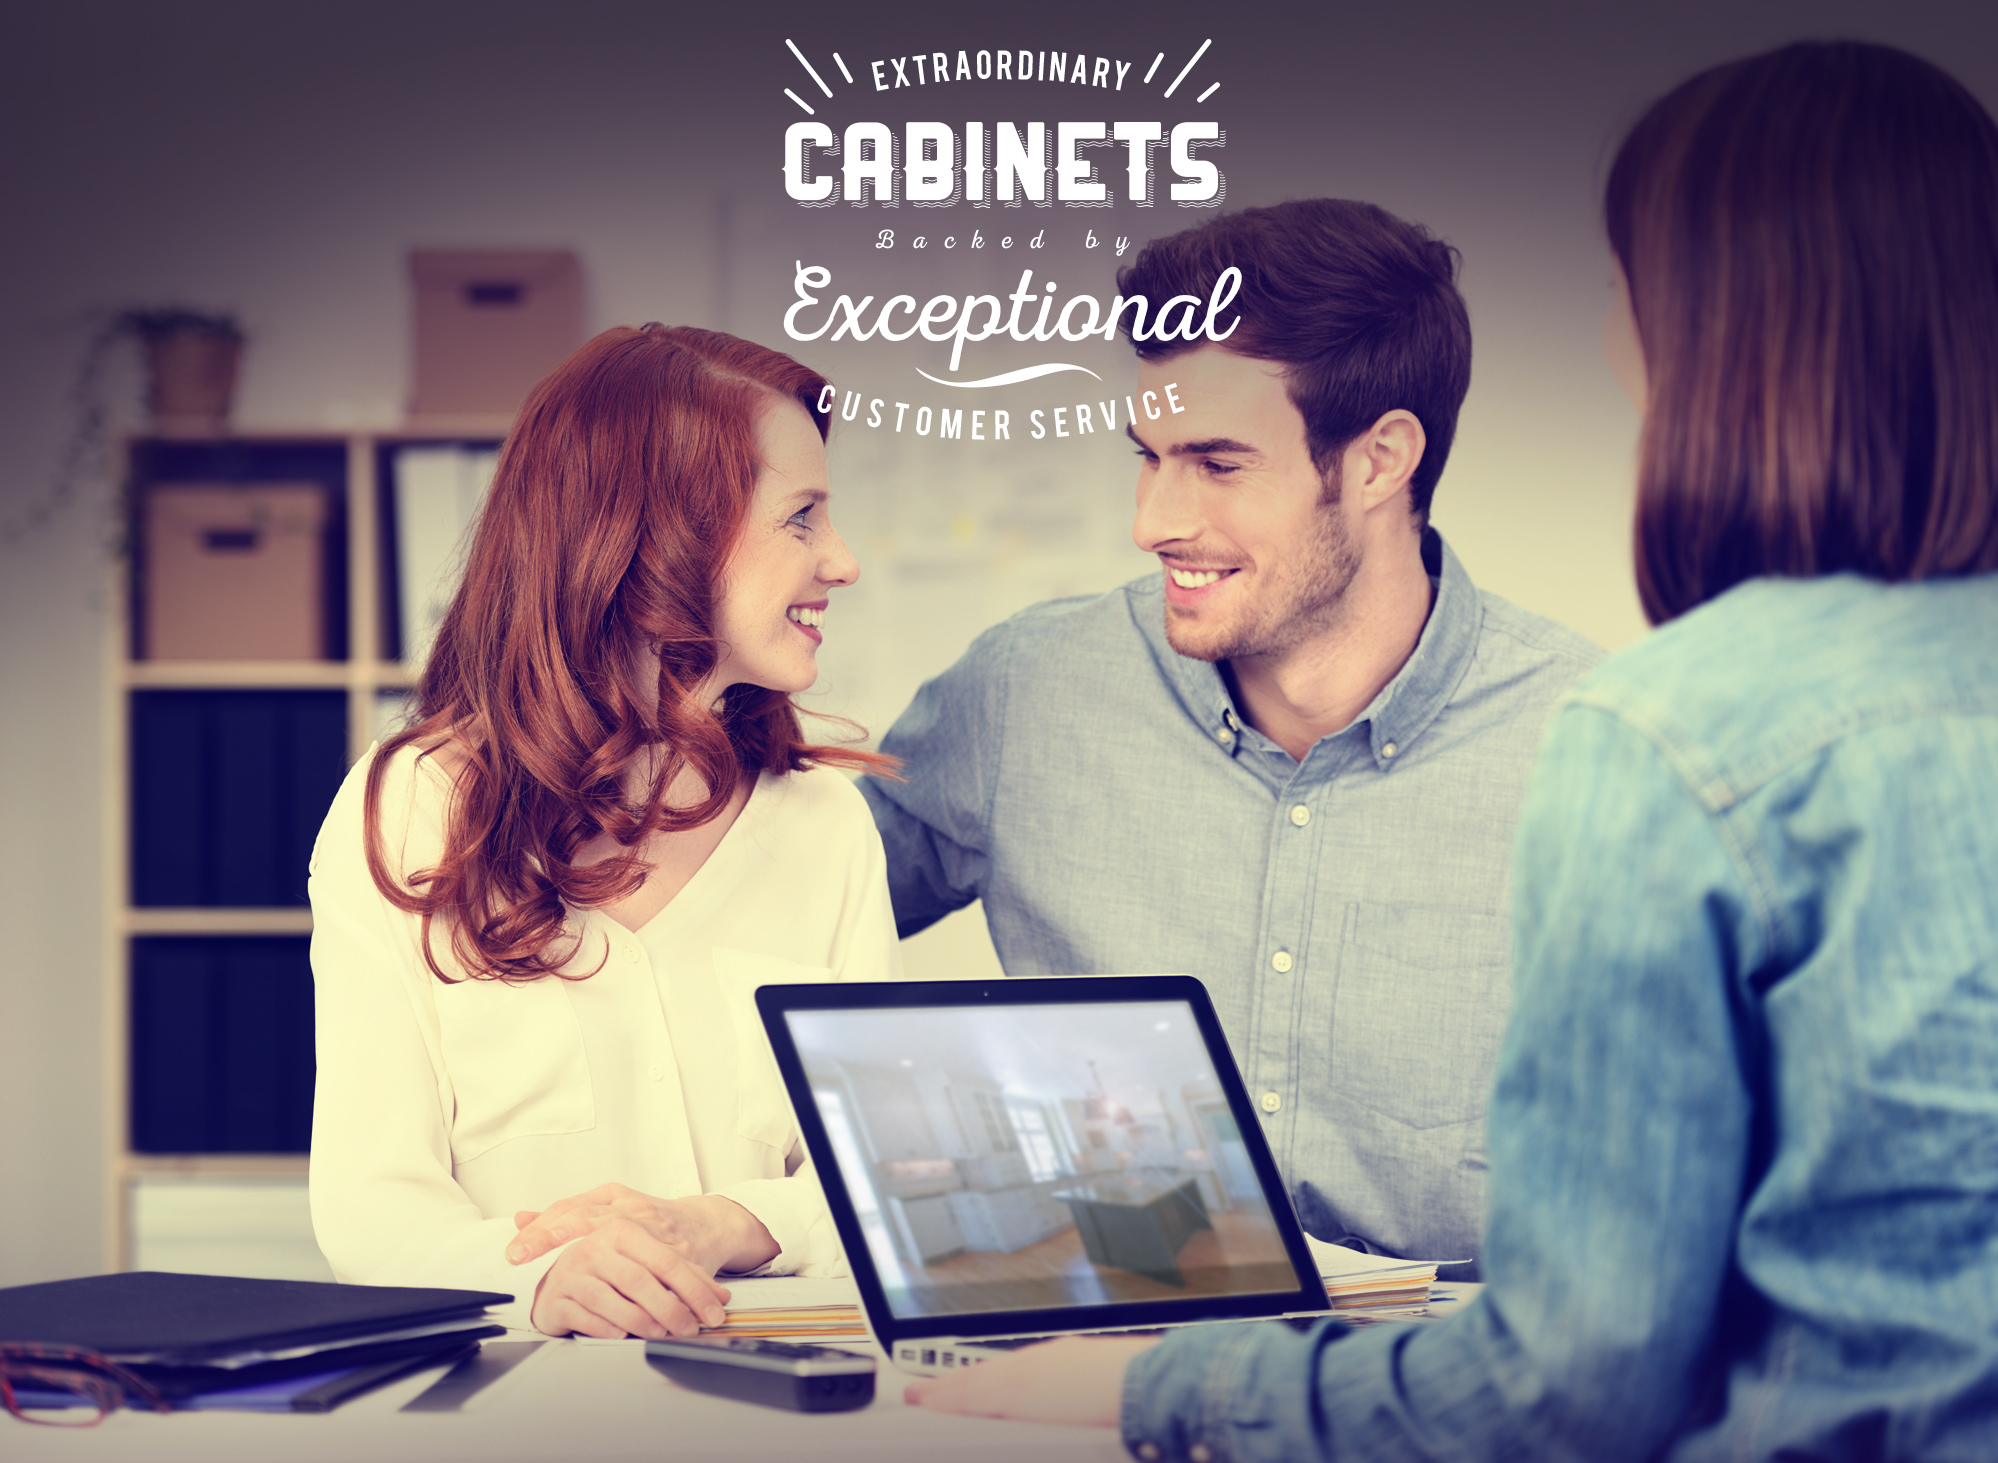 Extraordinary Cabinets Backed by Exceptional Customer Service